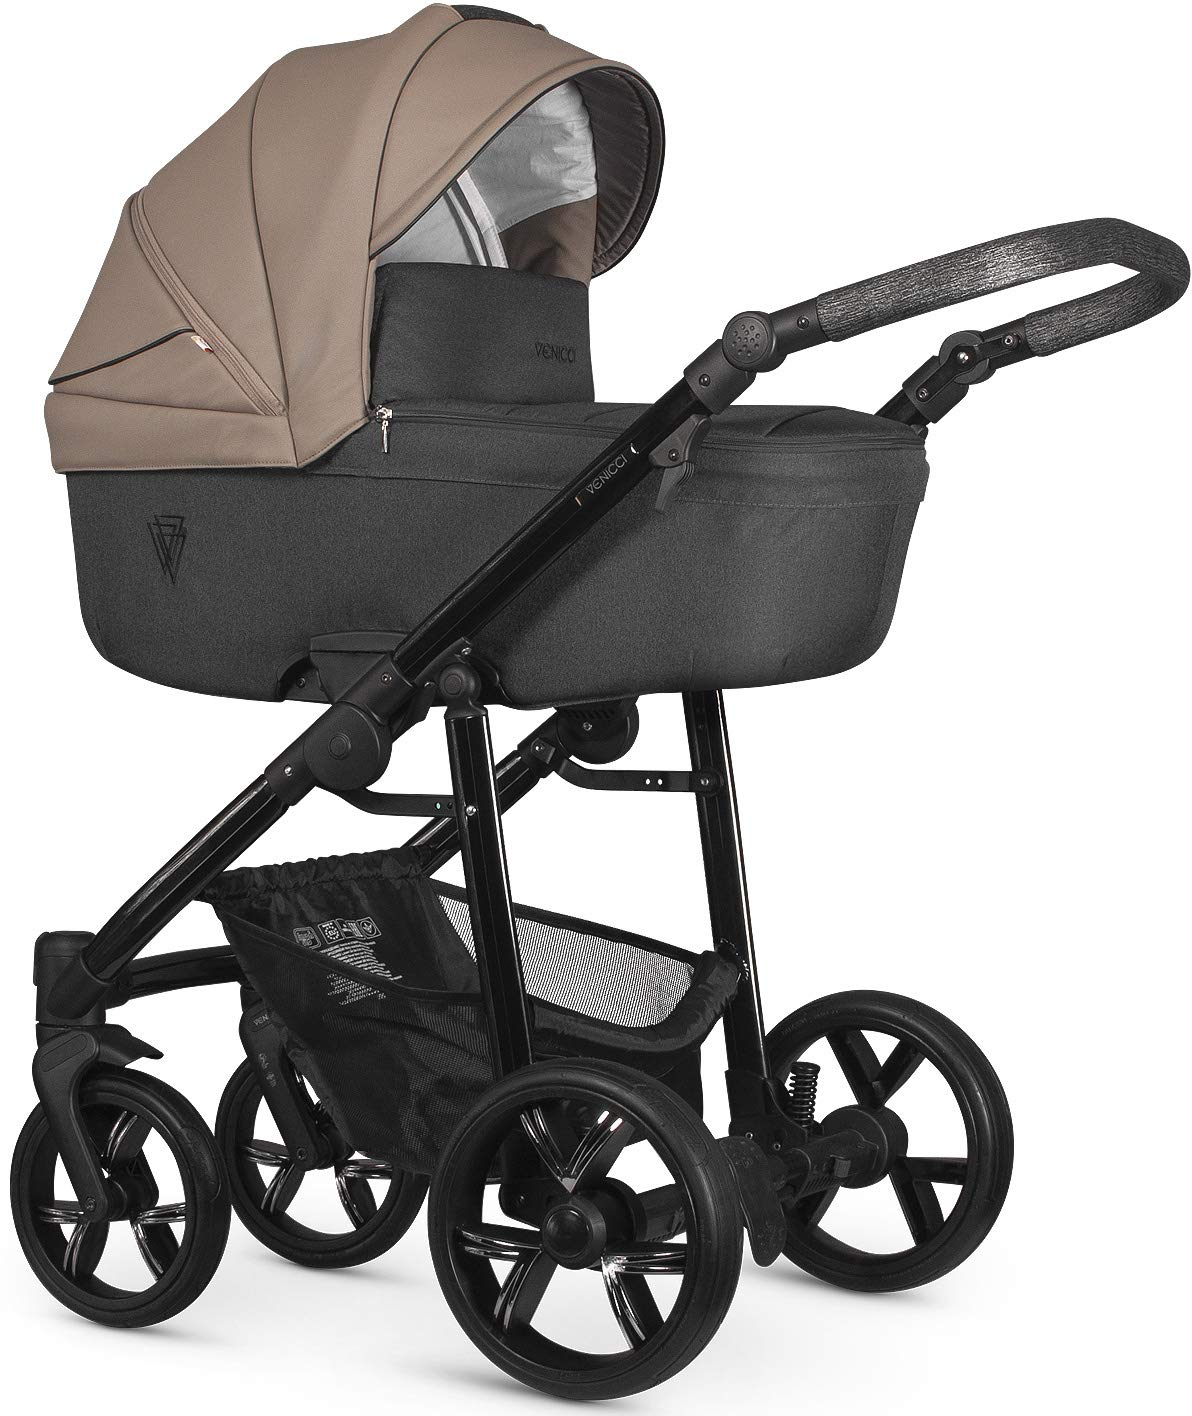 Venicci Valdi 2-in-1 Travel System - Cappuccino Venicci Carrycot: L 102cm W 61cm H 112 cm Age suitability: From birth to 6 months Seat unit: L 95cm W 61cm H 112cm Age suitability: From 7 to 36 months Chassis without wheels: L 82cm W 51cm H 28cm 1